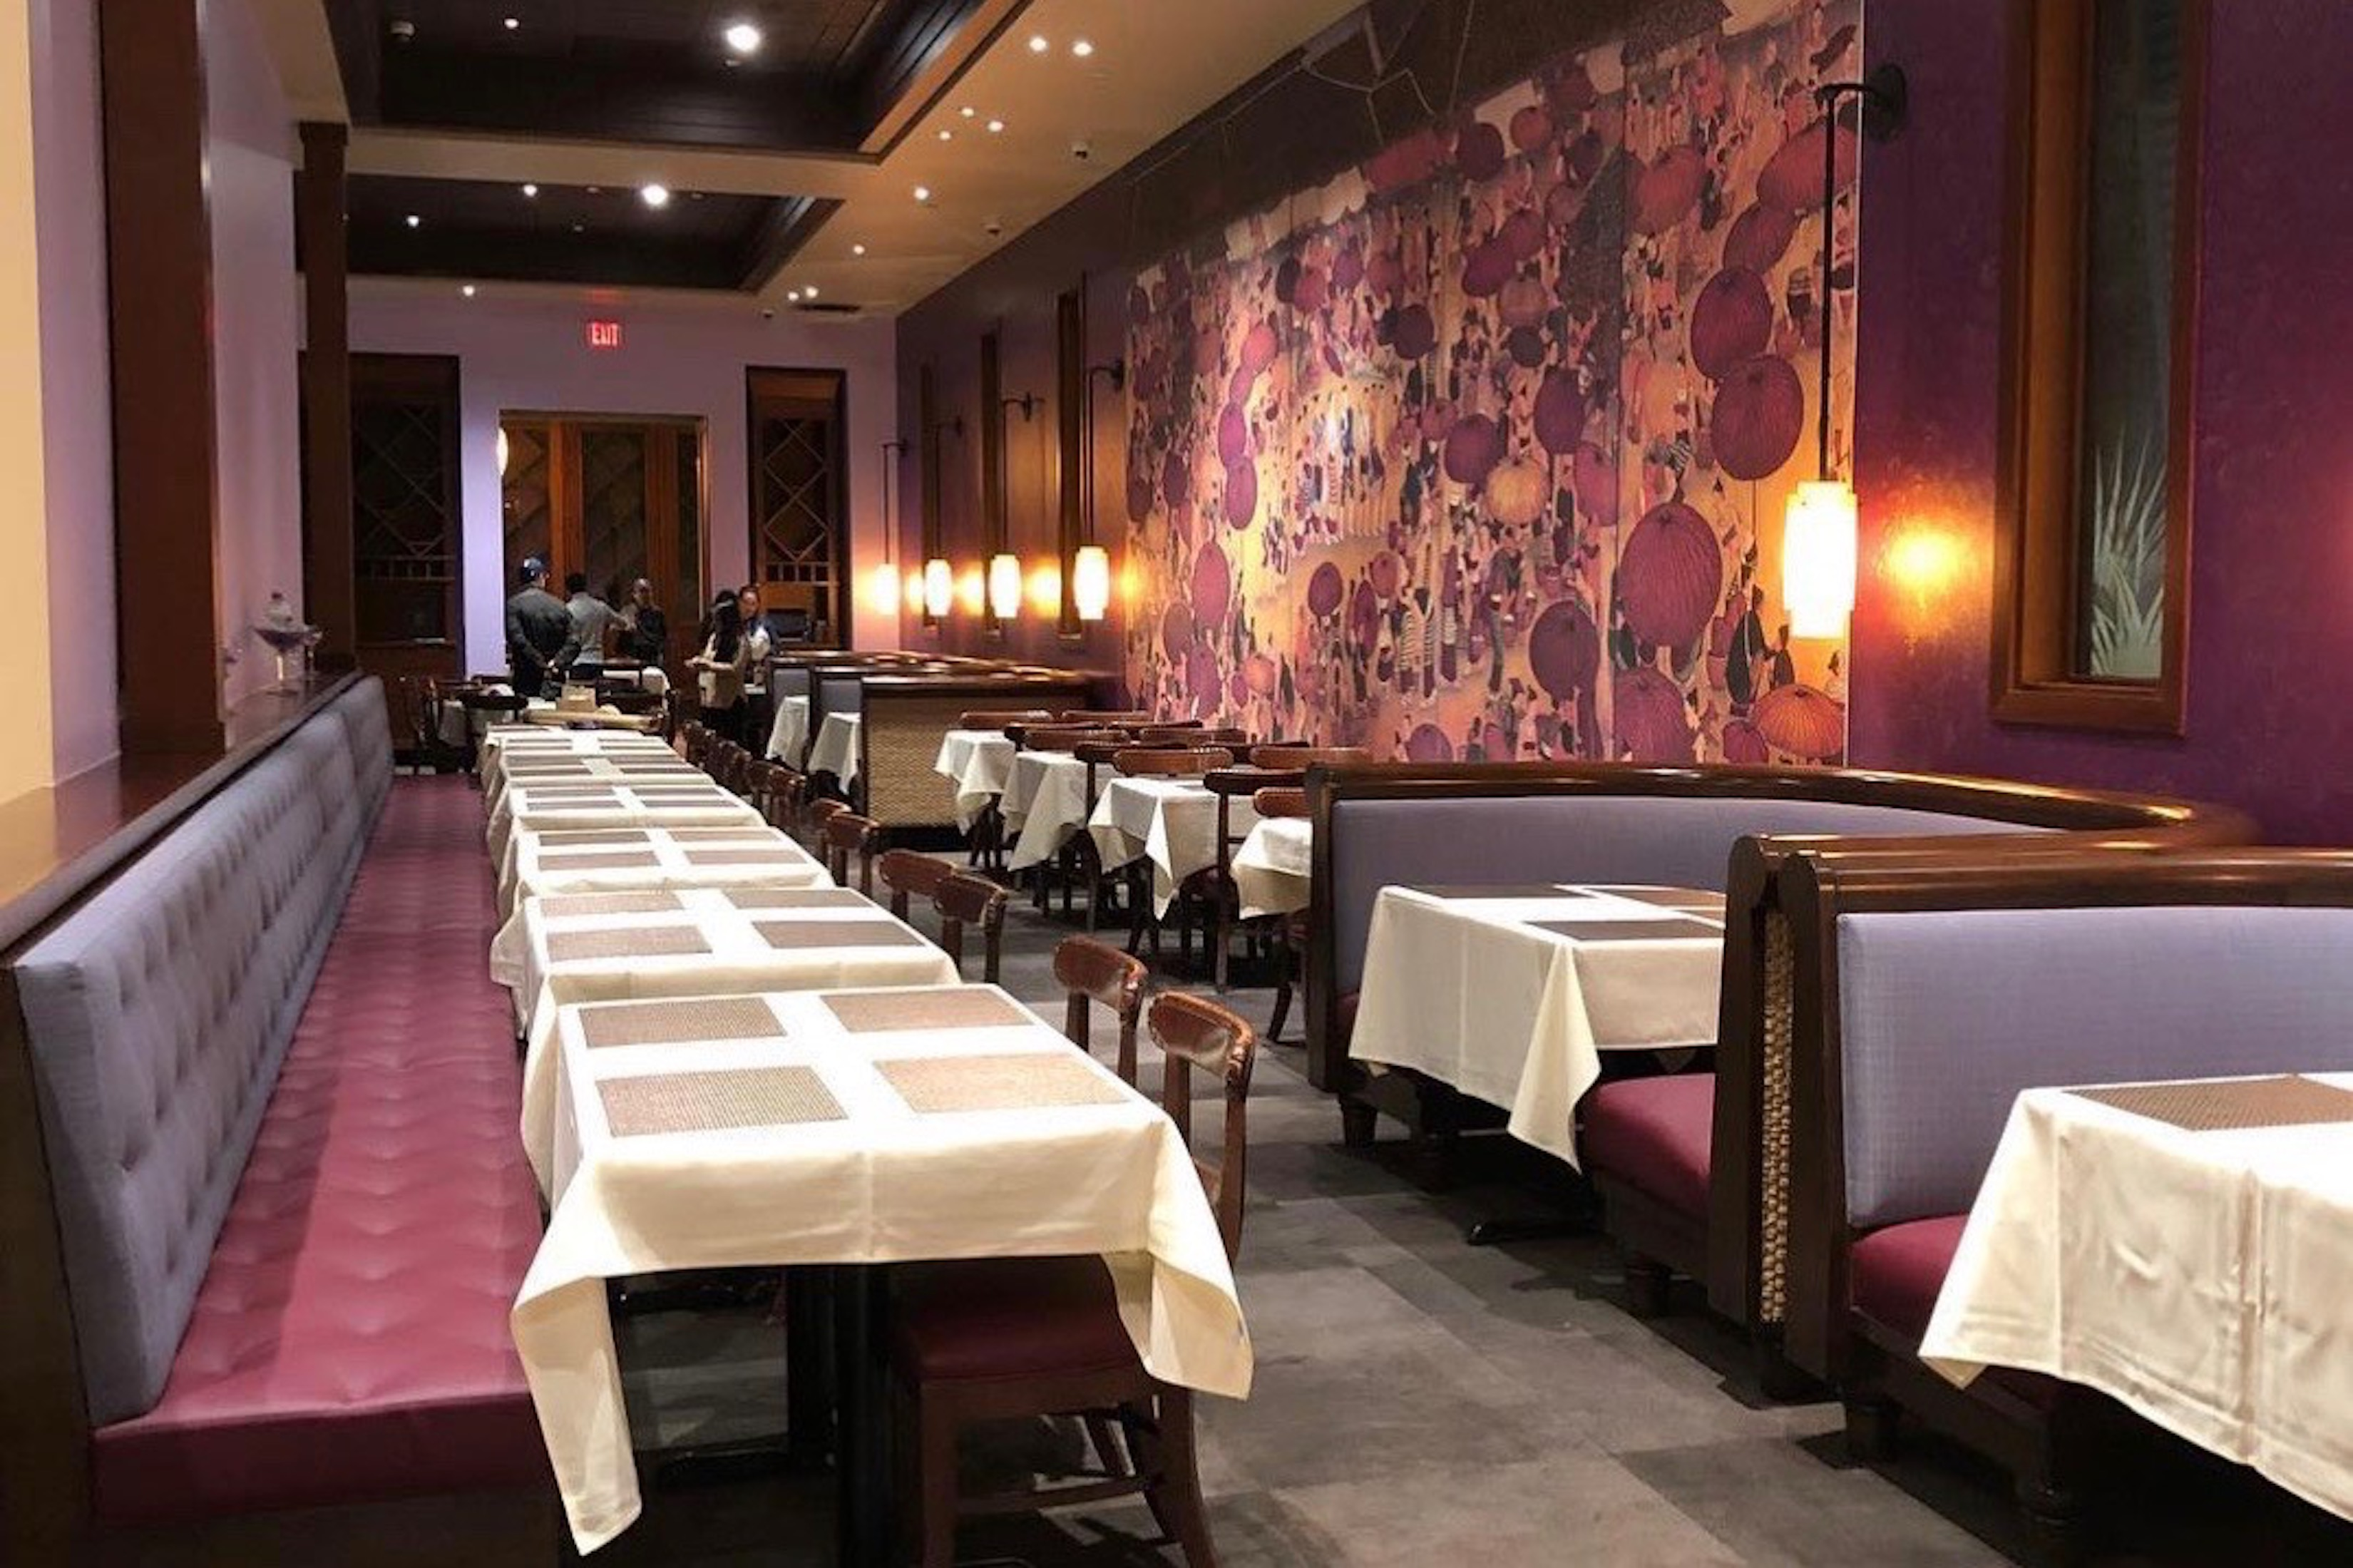 Cucina Restaurant Las Vegas Where To Eat And Drink In Las Vegas Las Vegas The